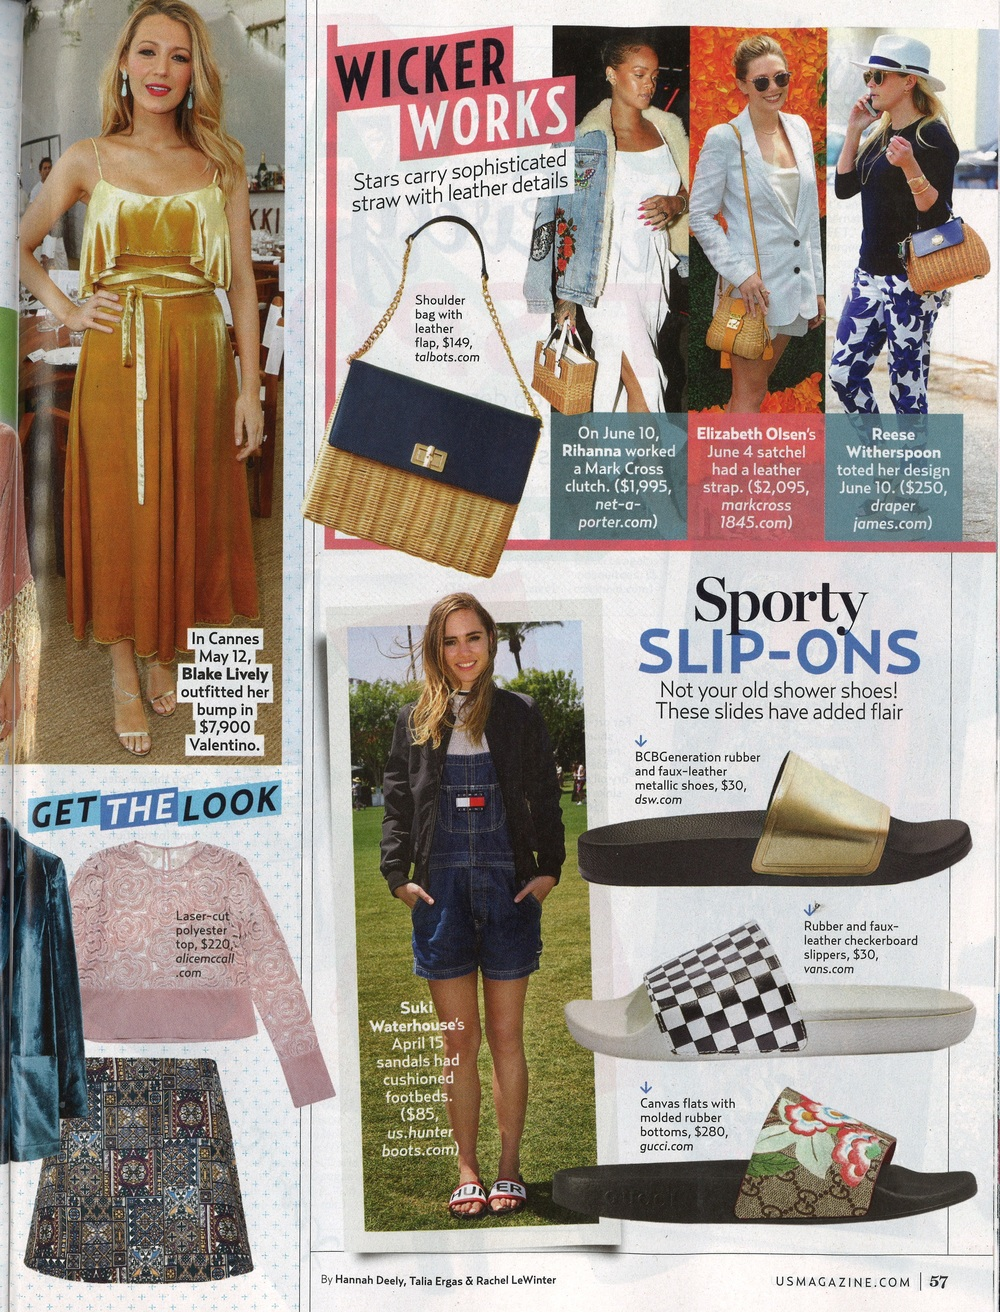 US Weekly - Wicker Works - 07.21.16.jpg